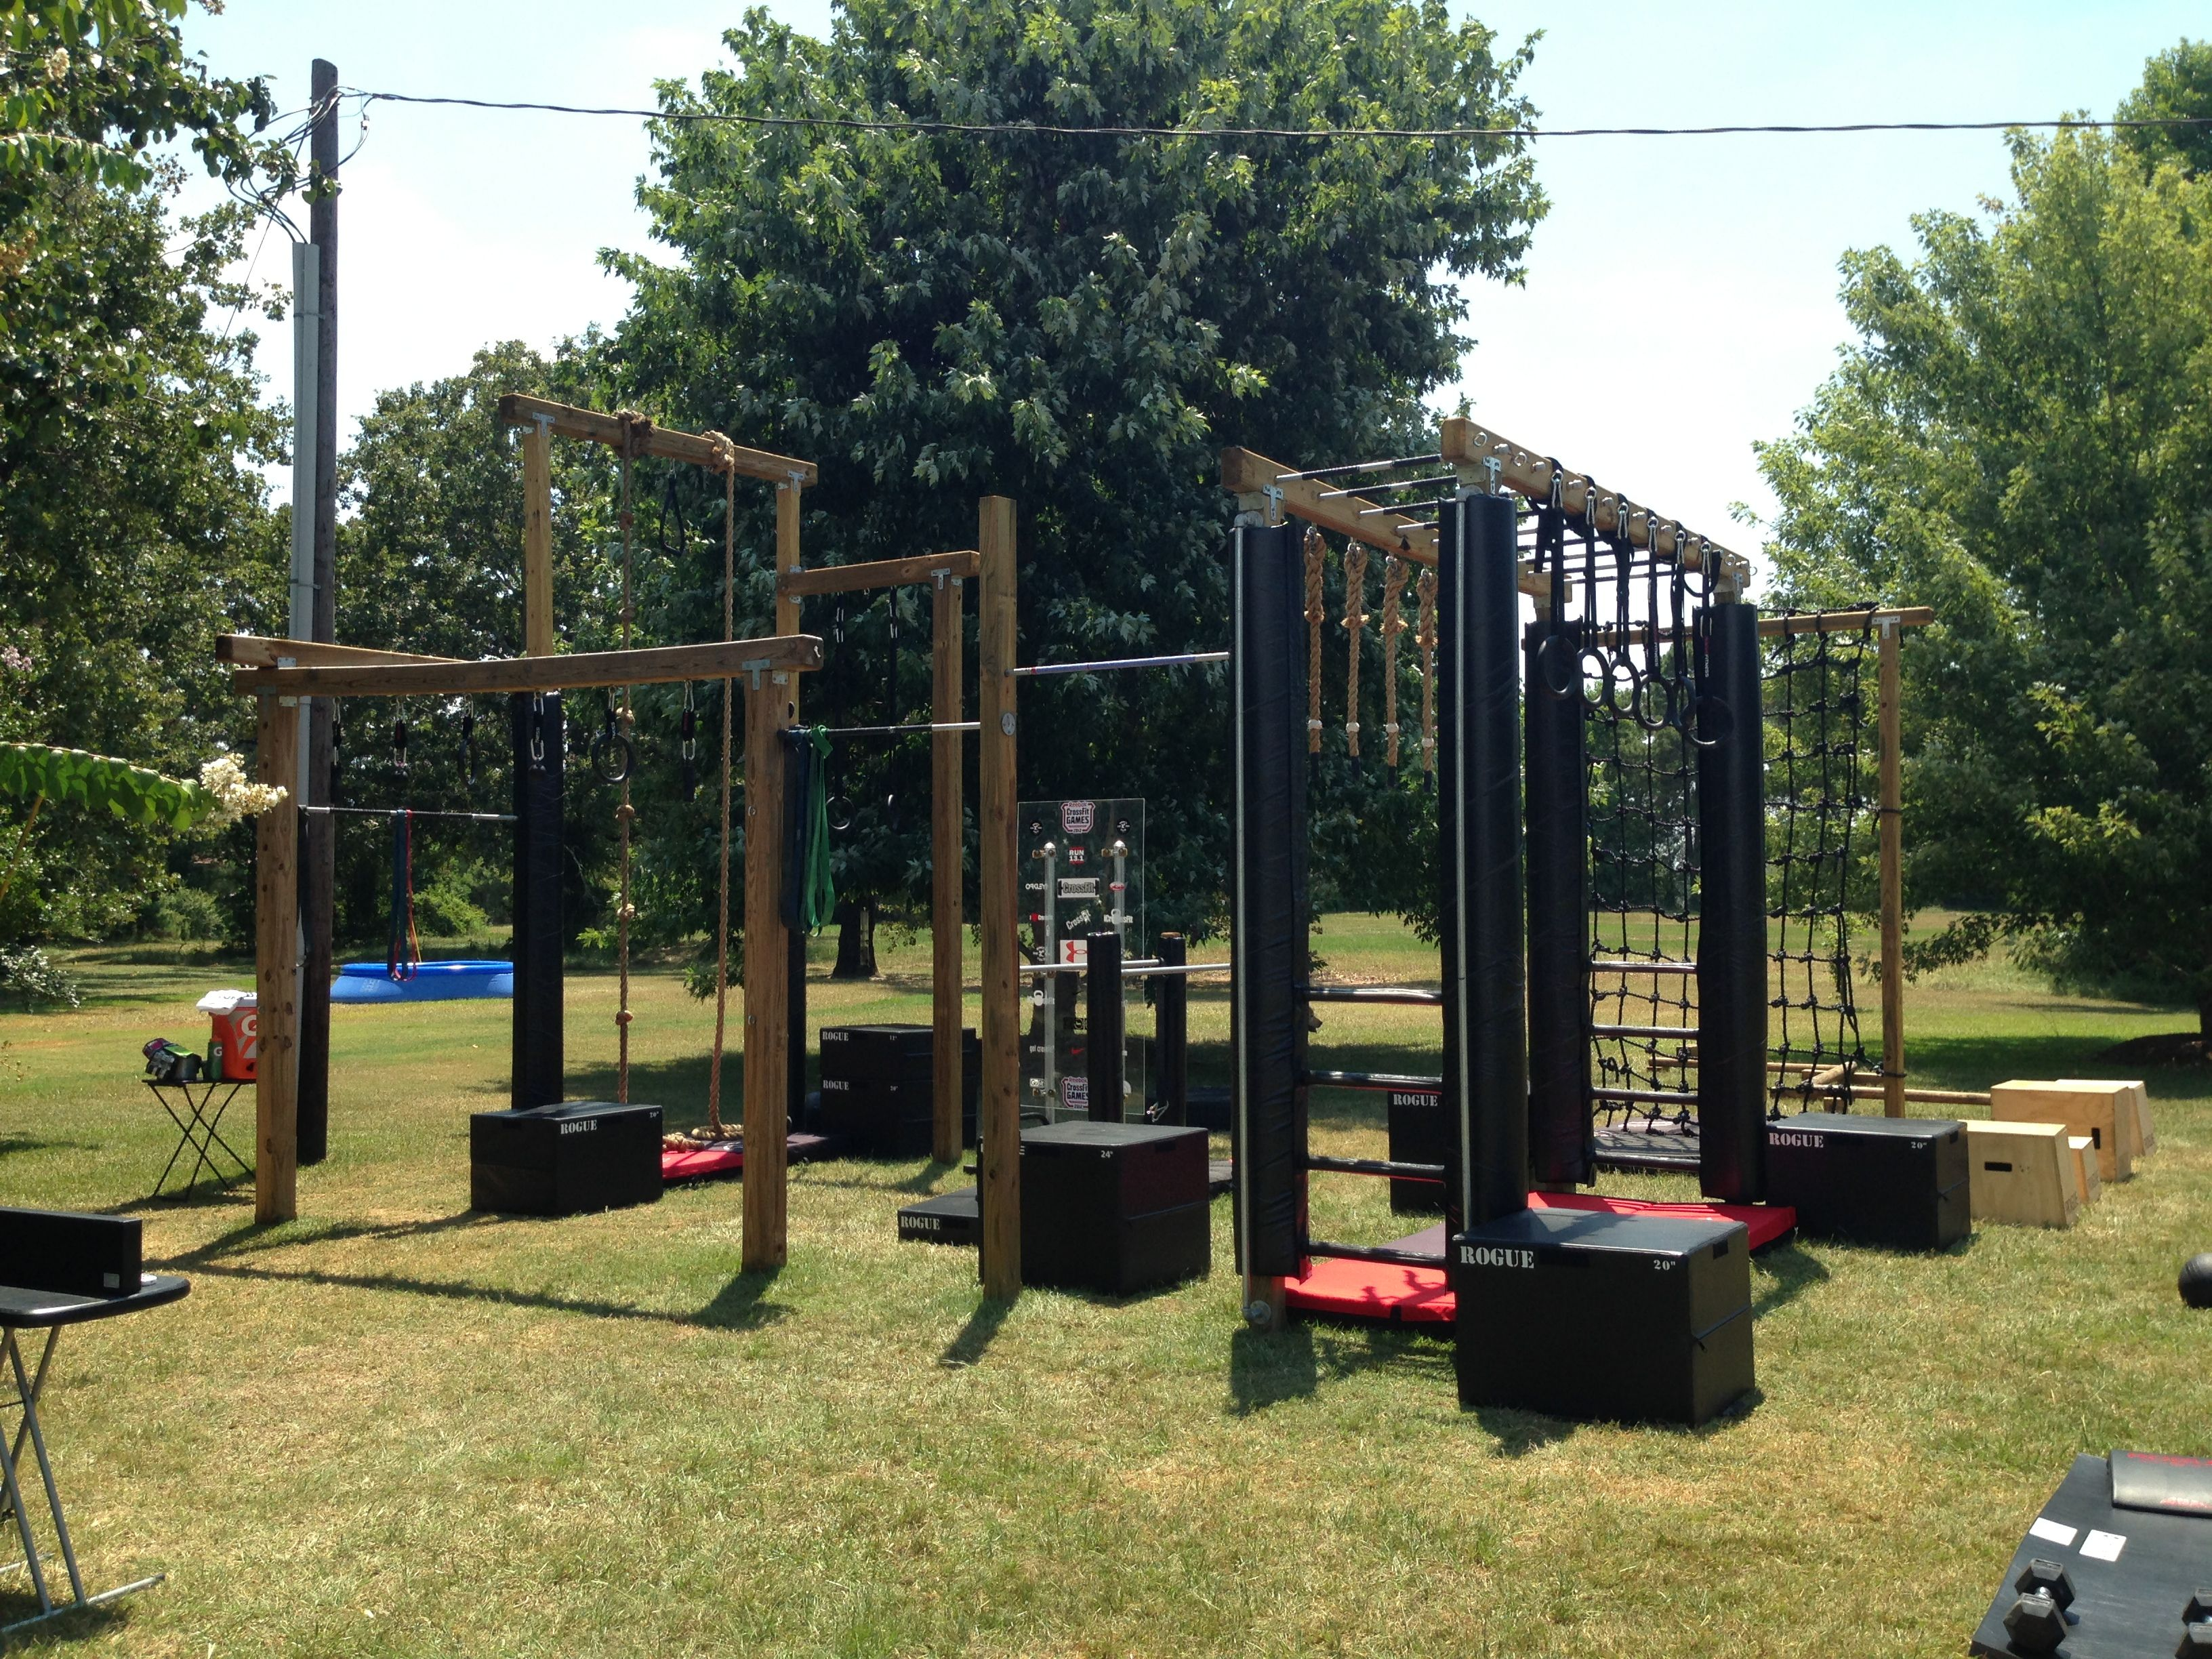 Garage Gym Photos - Inspirations & Ideas Gallery page 30  Backyard